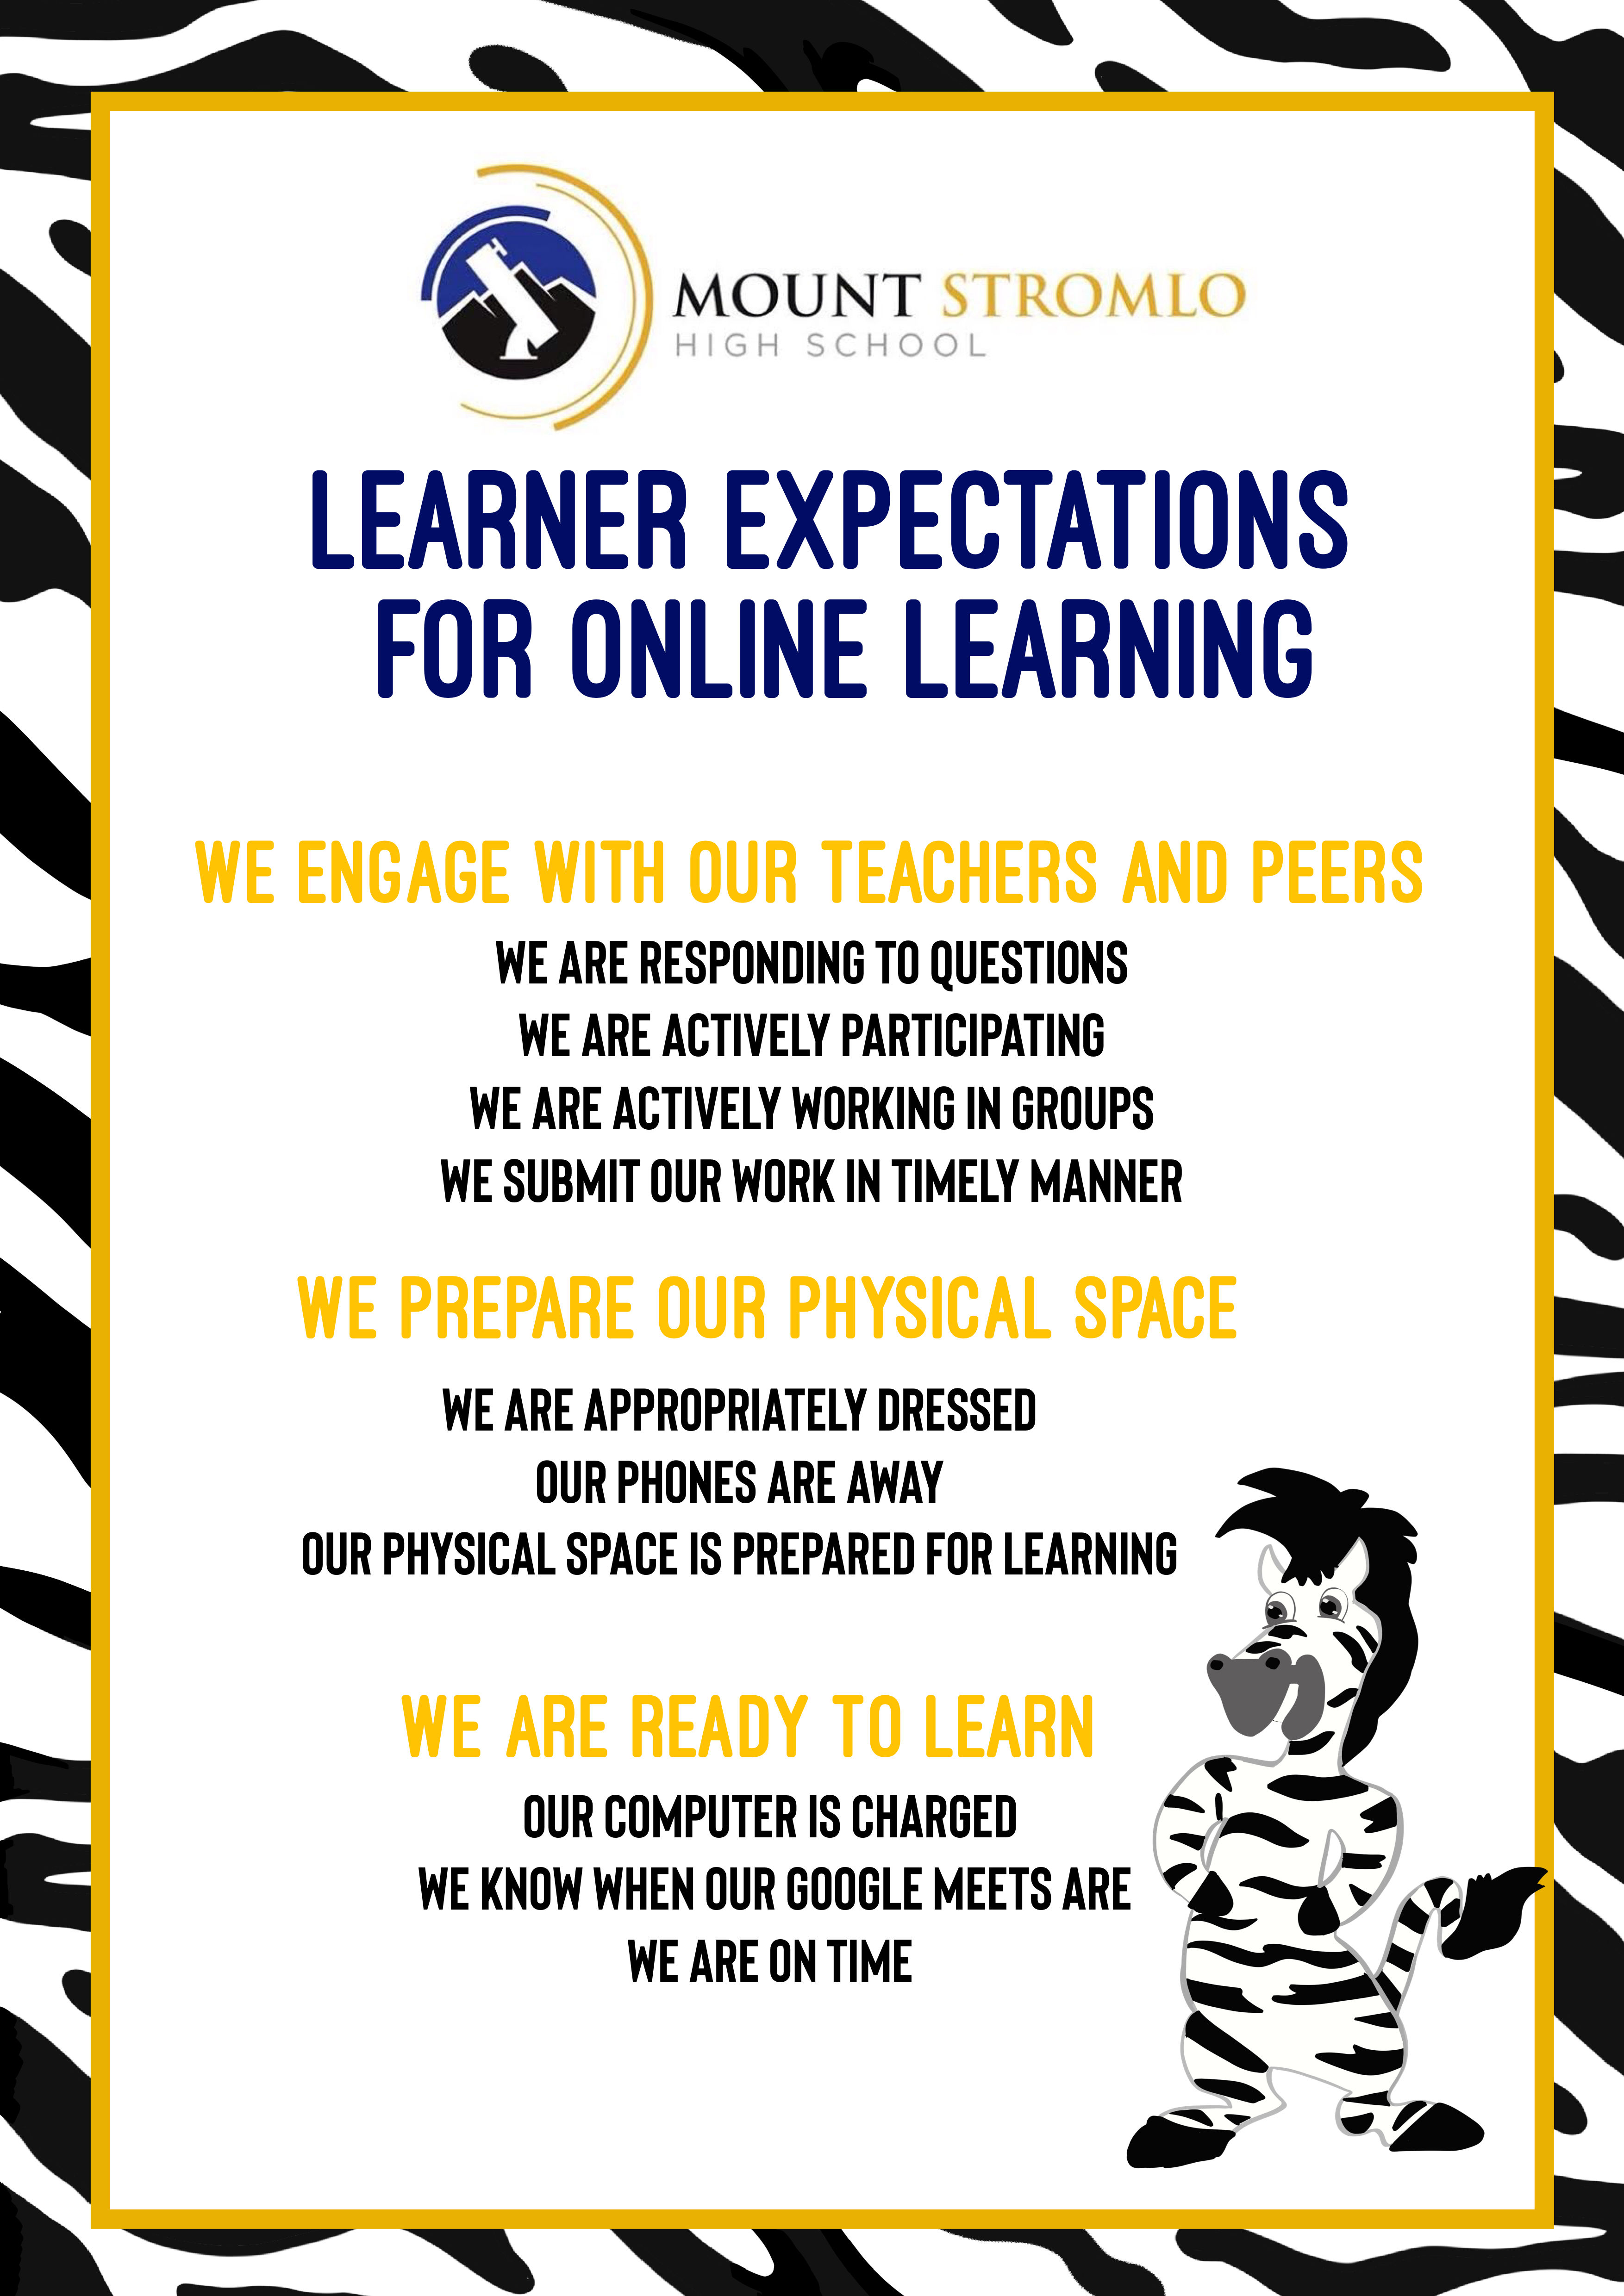 Learner expectations for online learning; We engage with our teachers and peers, We prepare our physical space, We are ready to learn